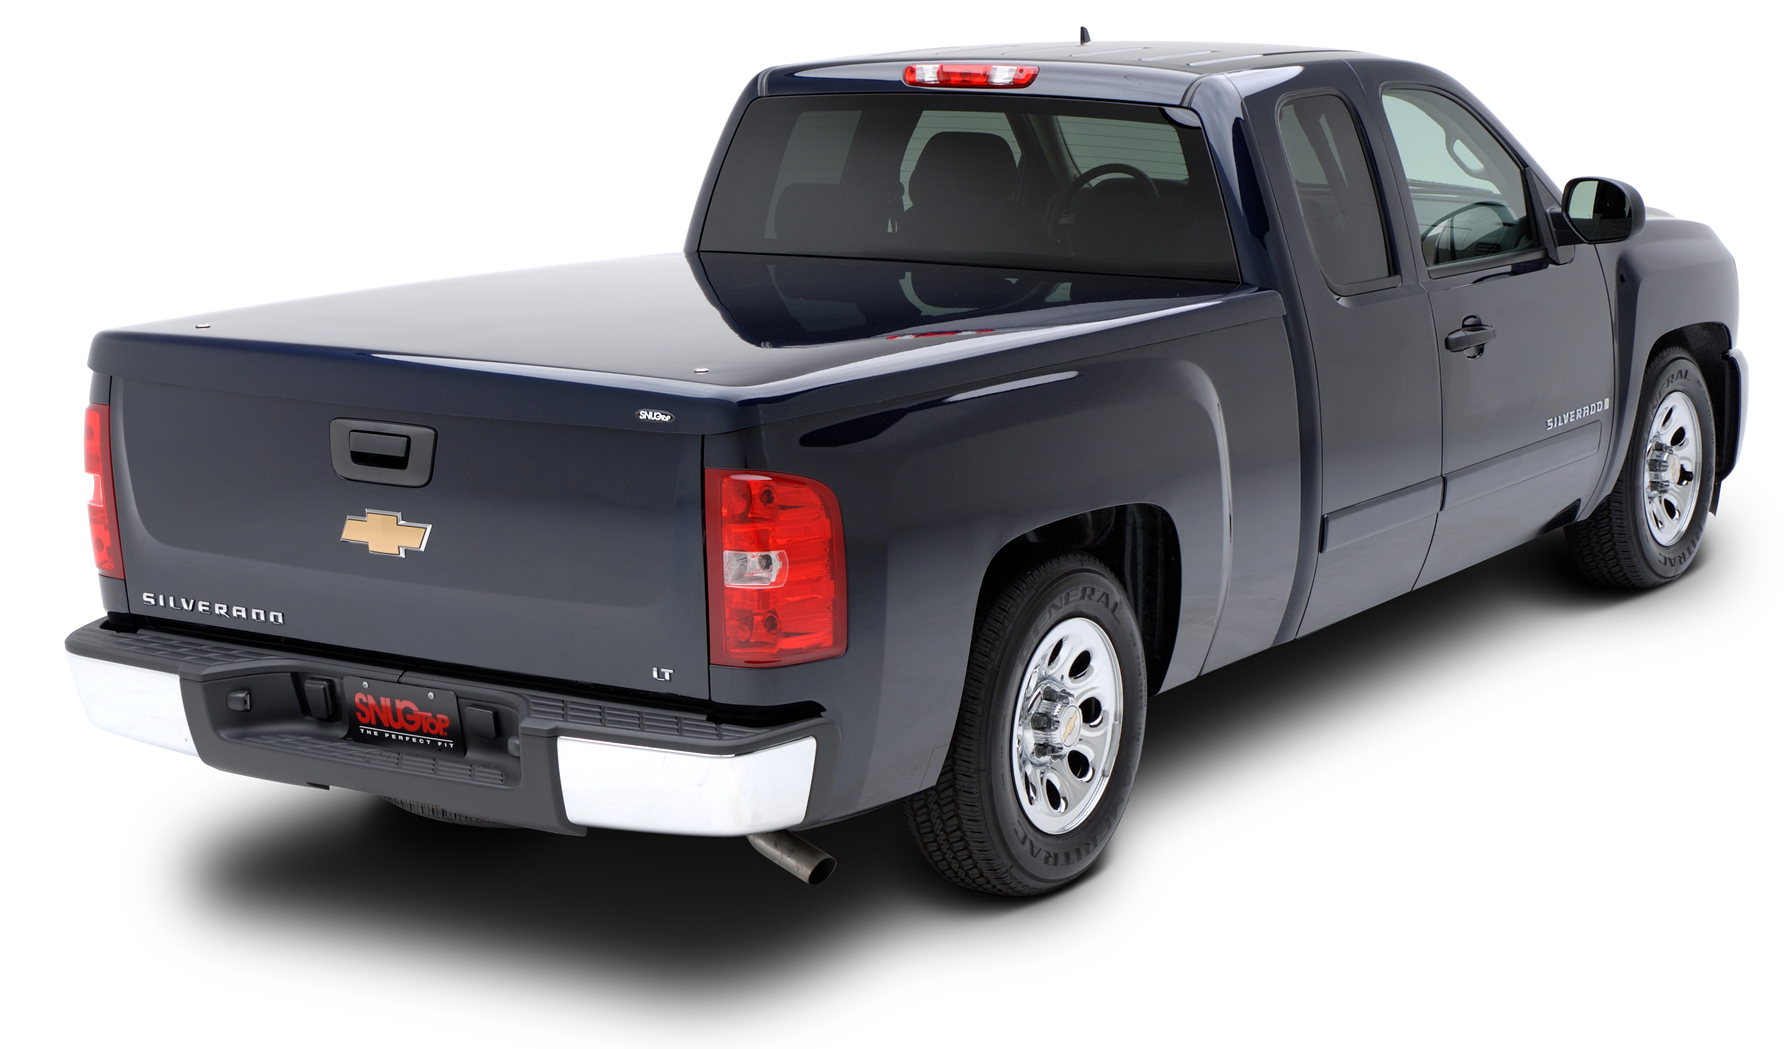 tc lid on 2007 silverado - black.jpg